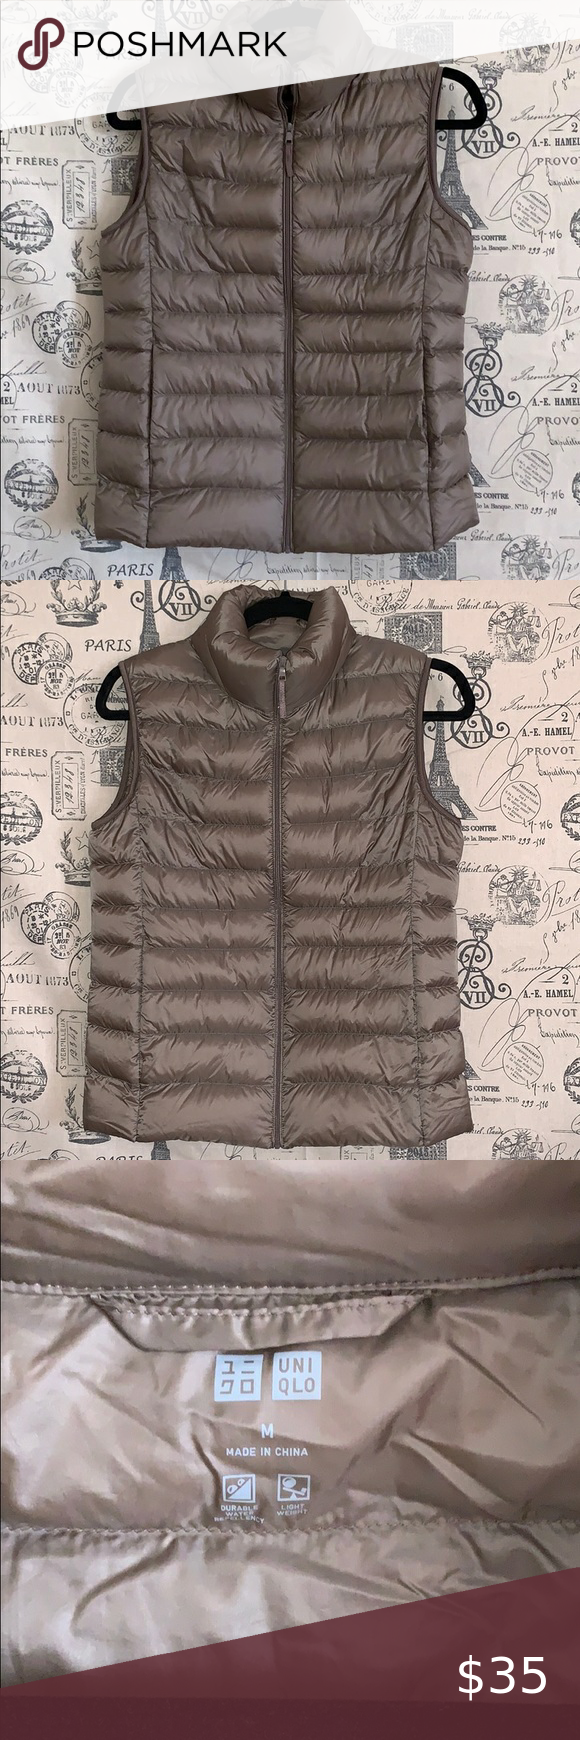 20++ Womens vest with inside pockets trends